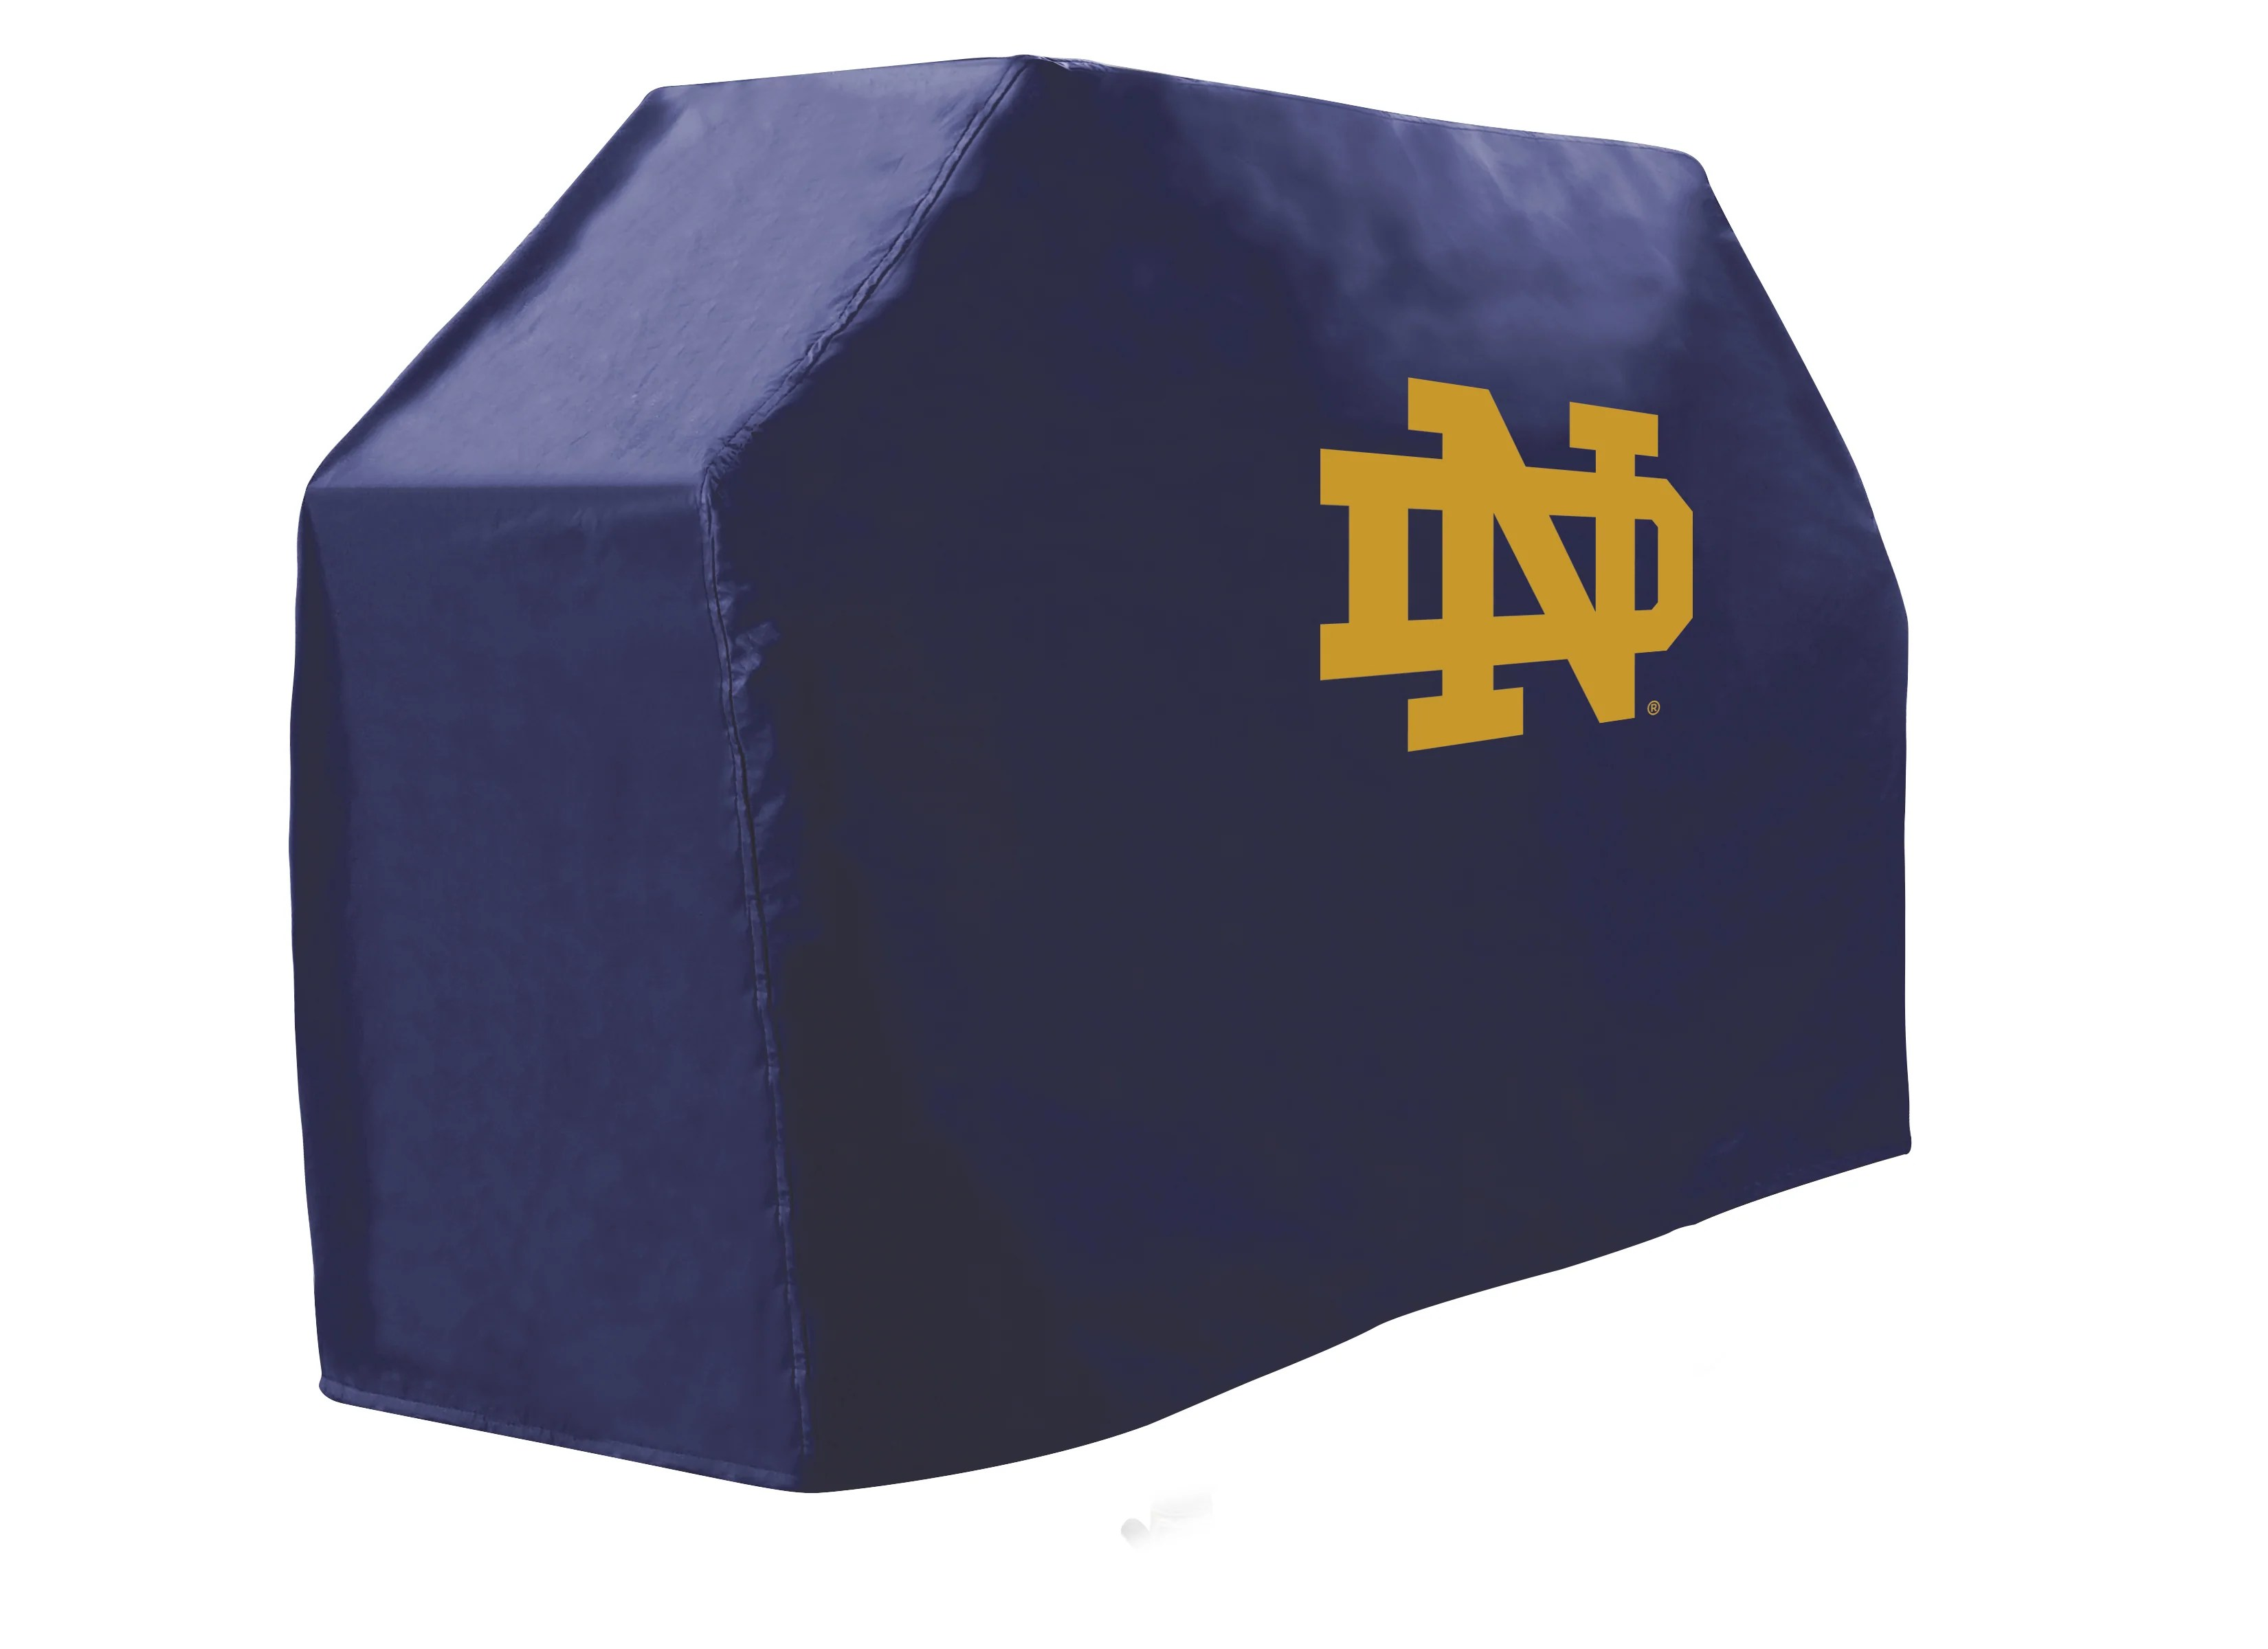 Notre Dame University Bbq Grill Cover Grill-cover-store